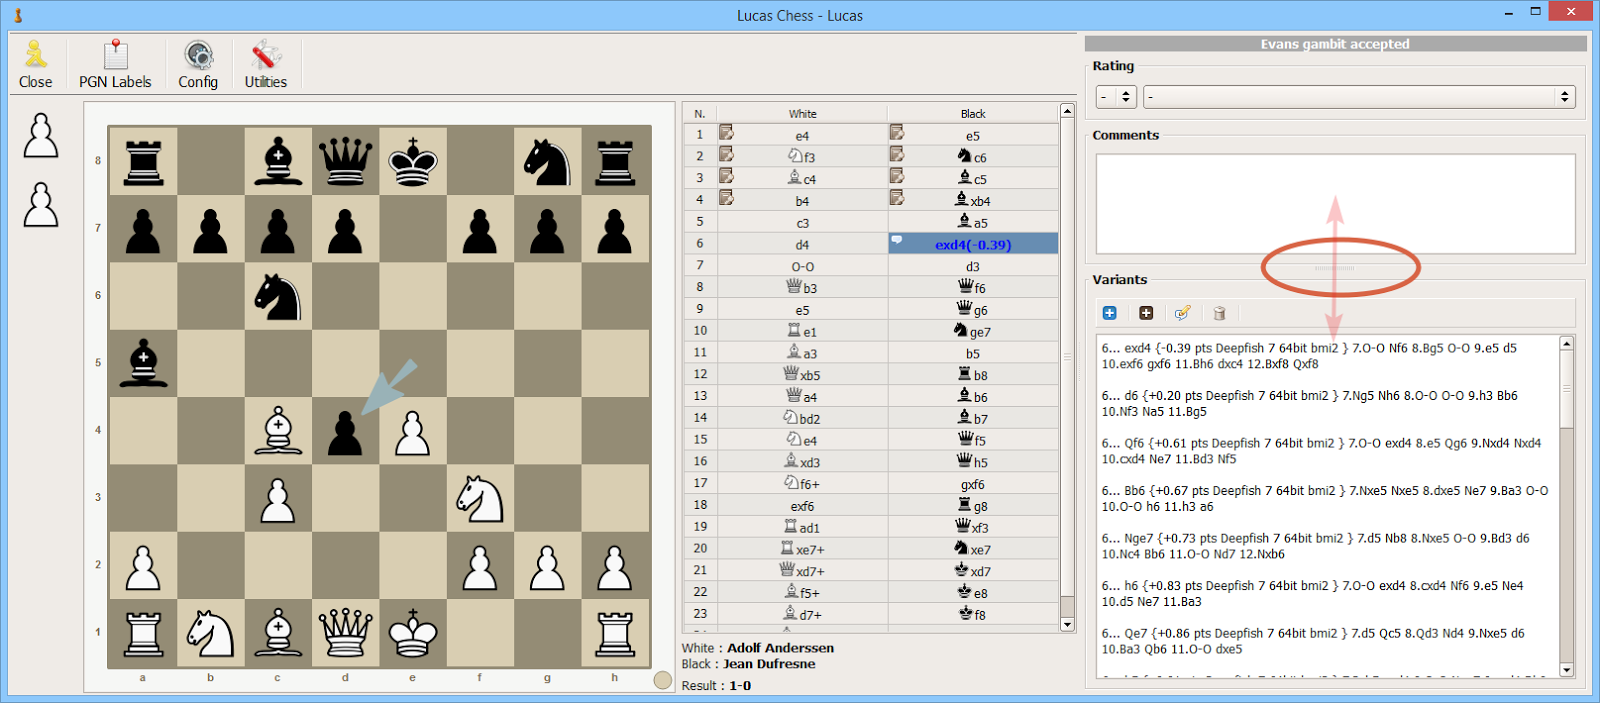 Lucas Chess Fresh News: Version 10 09: some bugs fixed